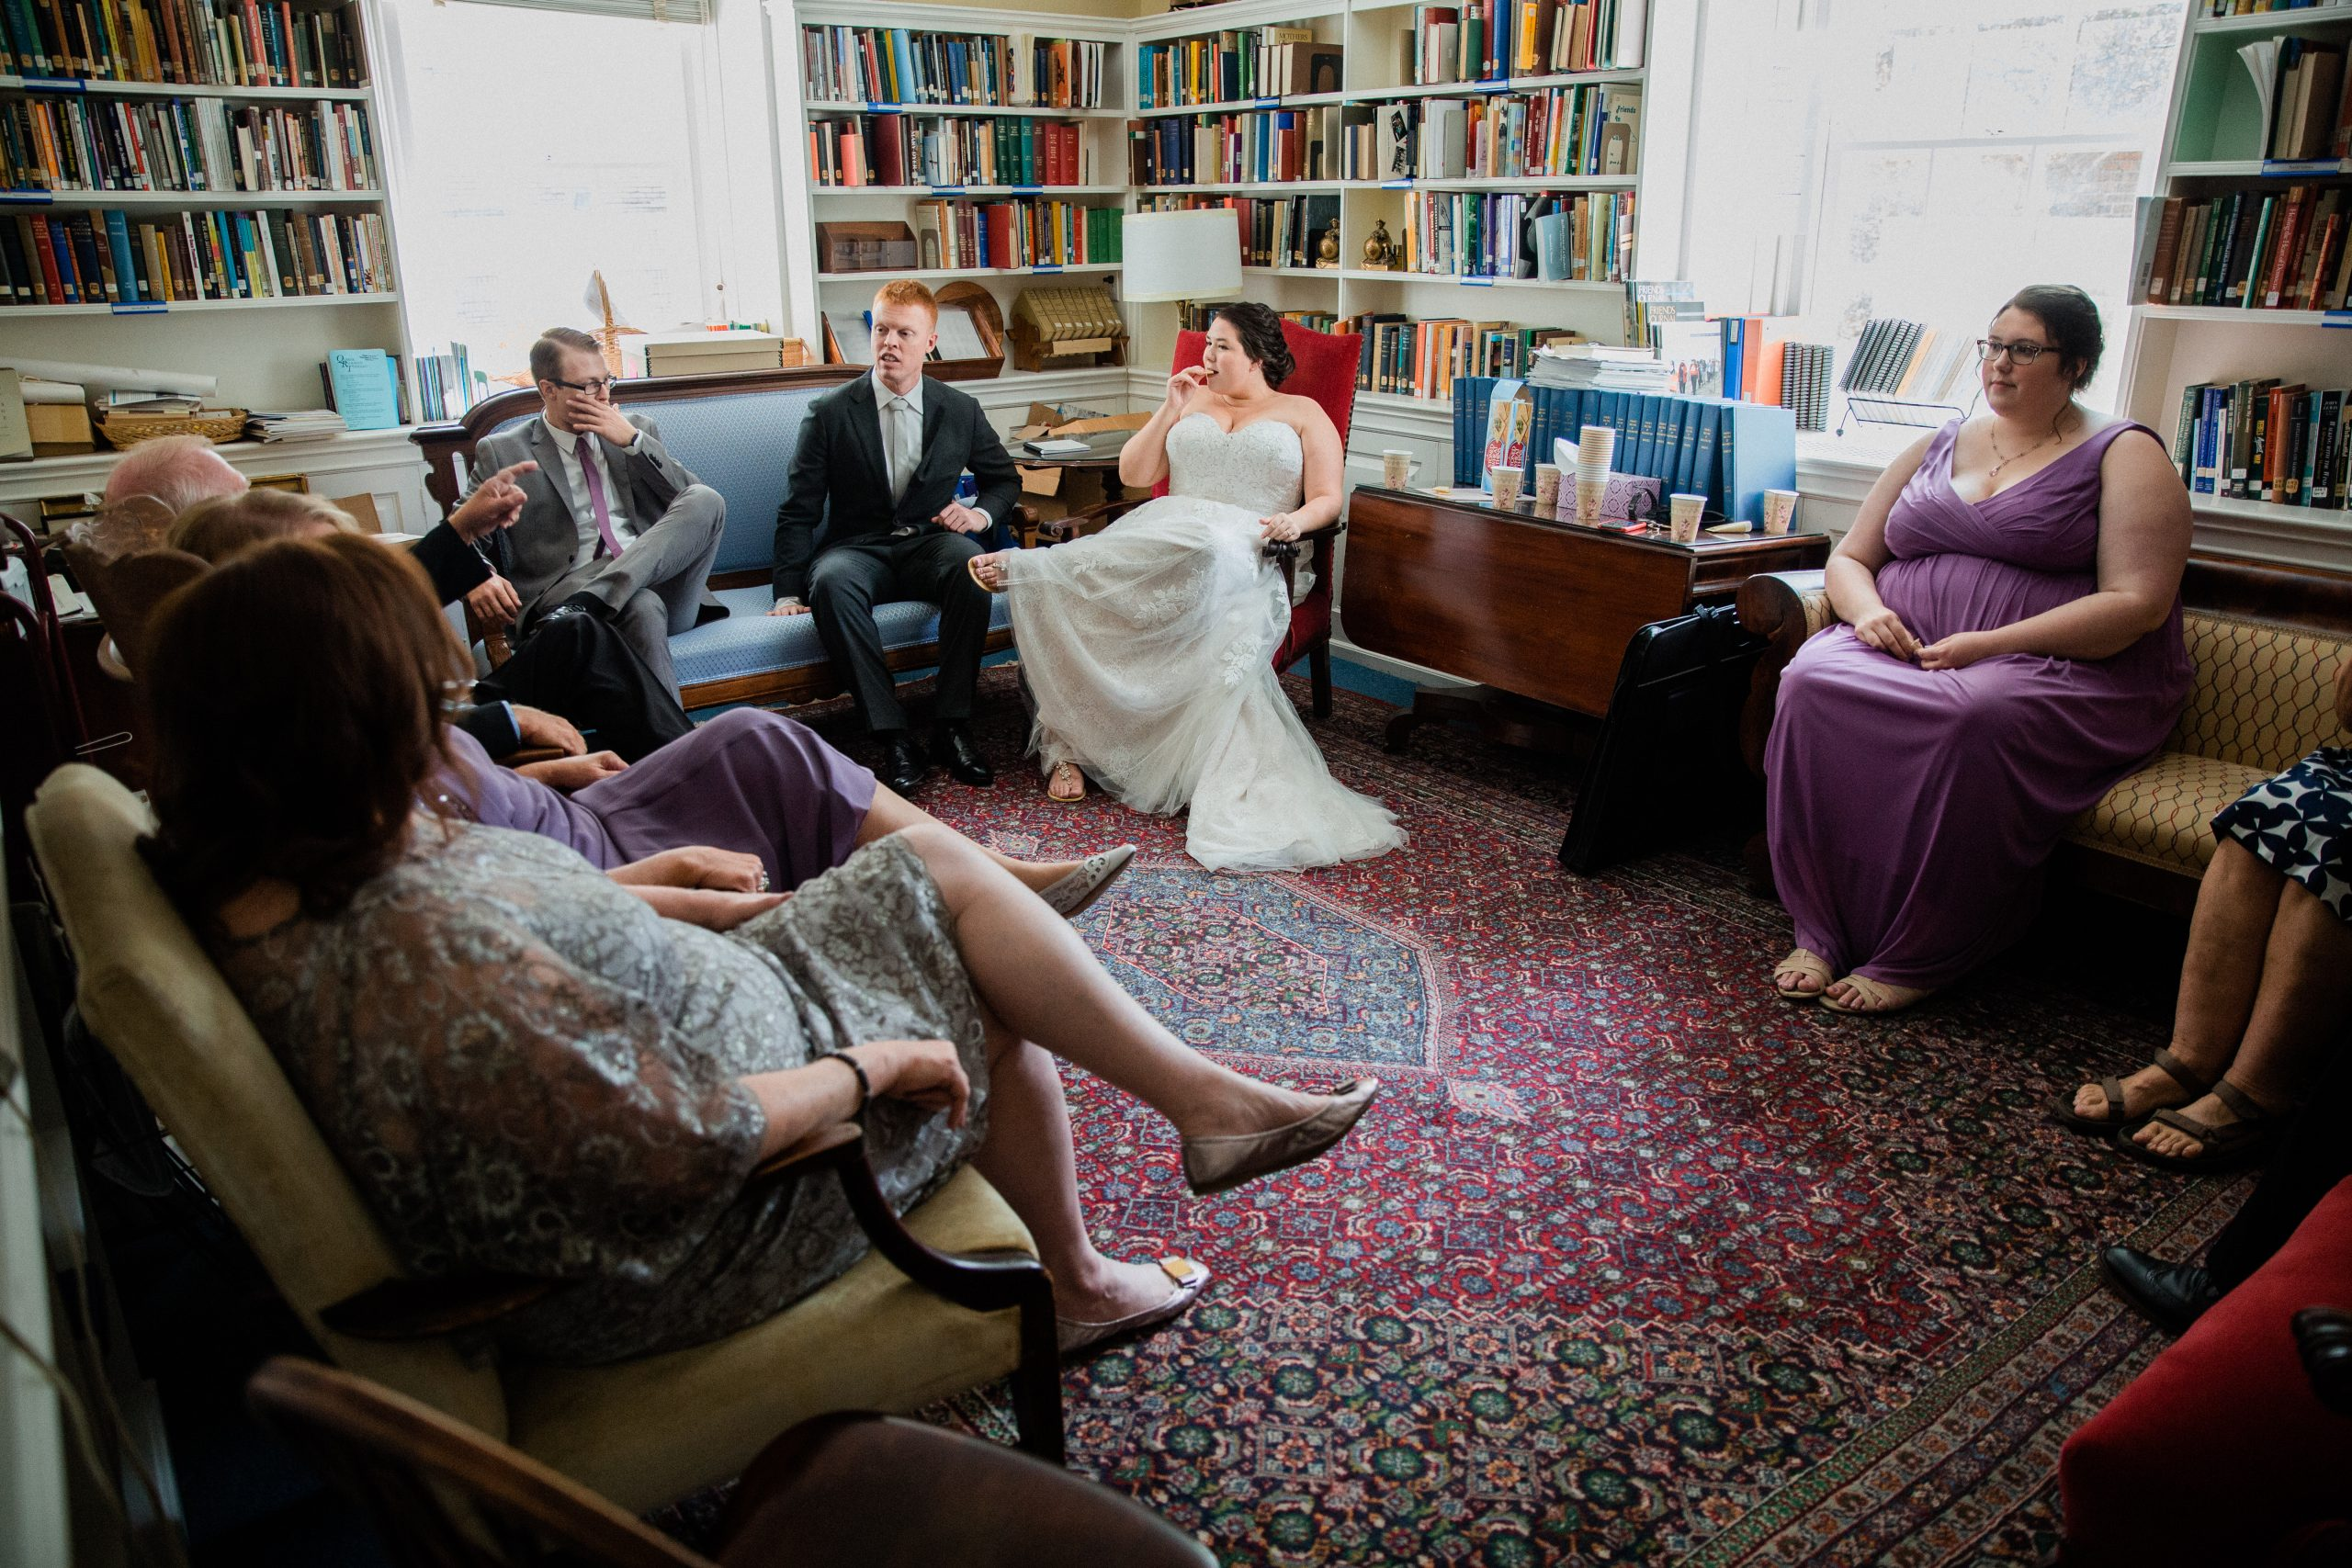 A wedding party waits for the ceremony to begin